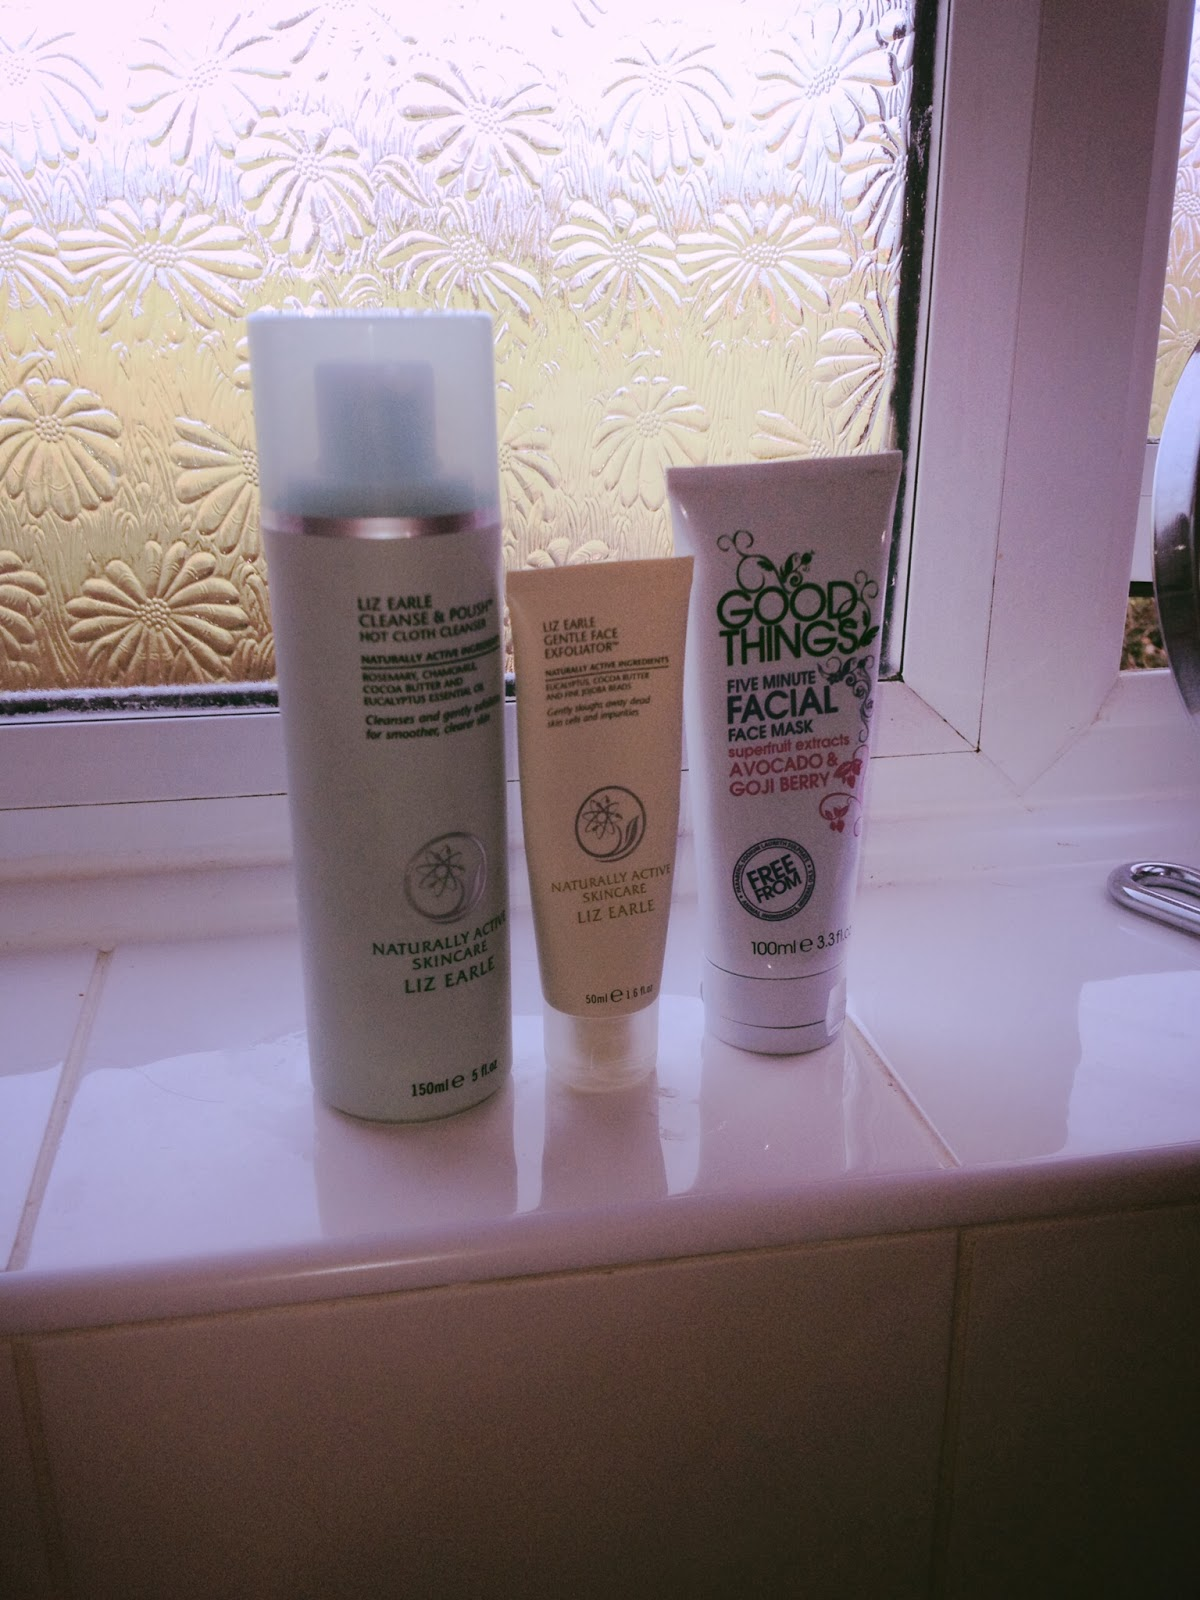 Liz Earle Cleanse and Polish, Liz Earle Gentle Face Exfoliator, Good Things Five Minute Facial 2